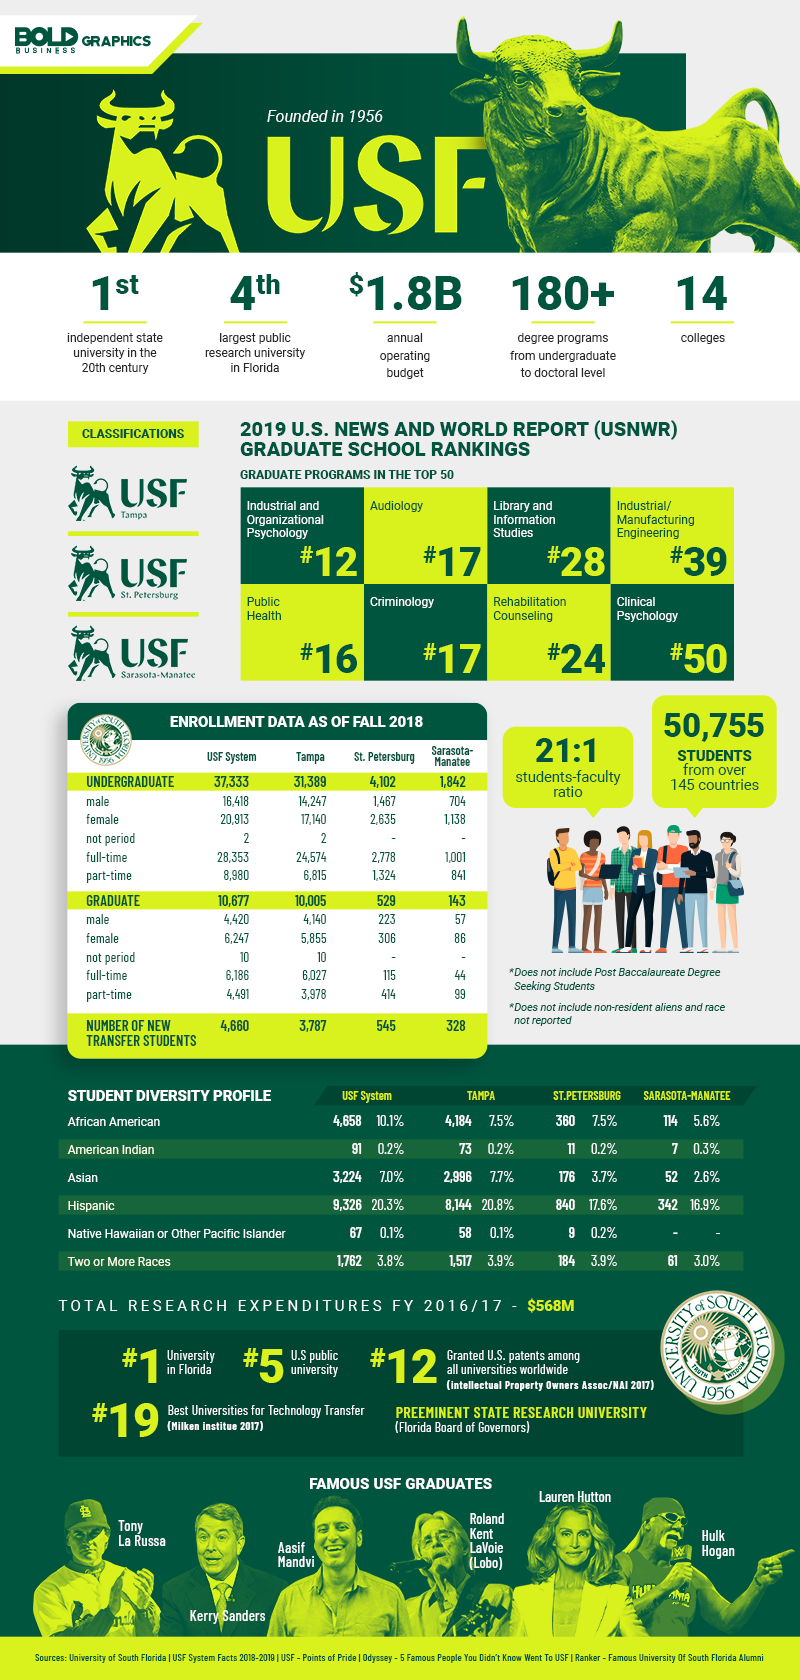 The University of South Florida Key Facts and Statistics